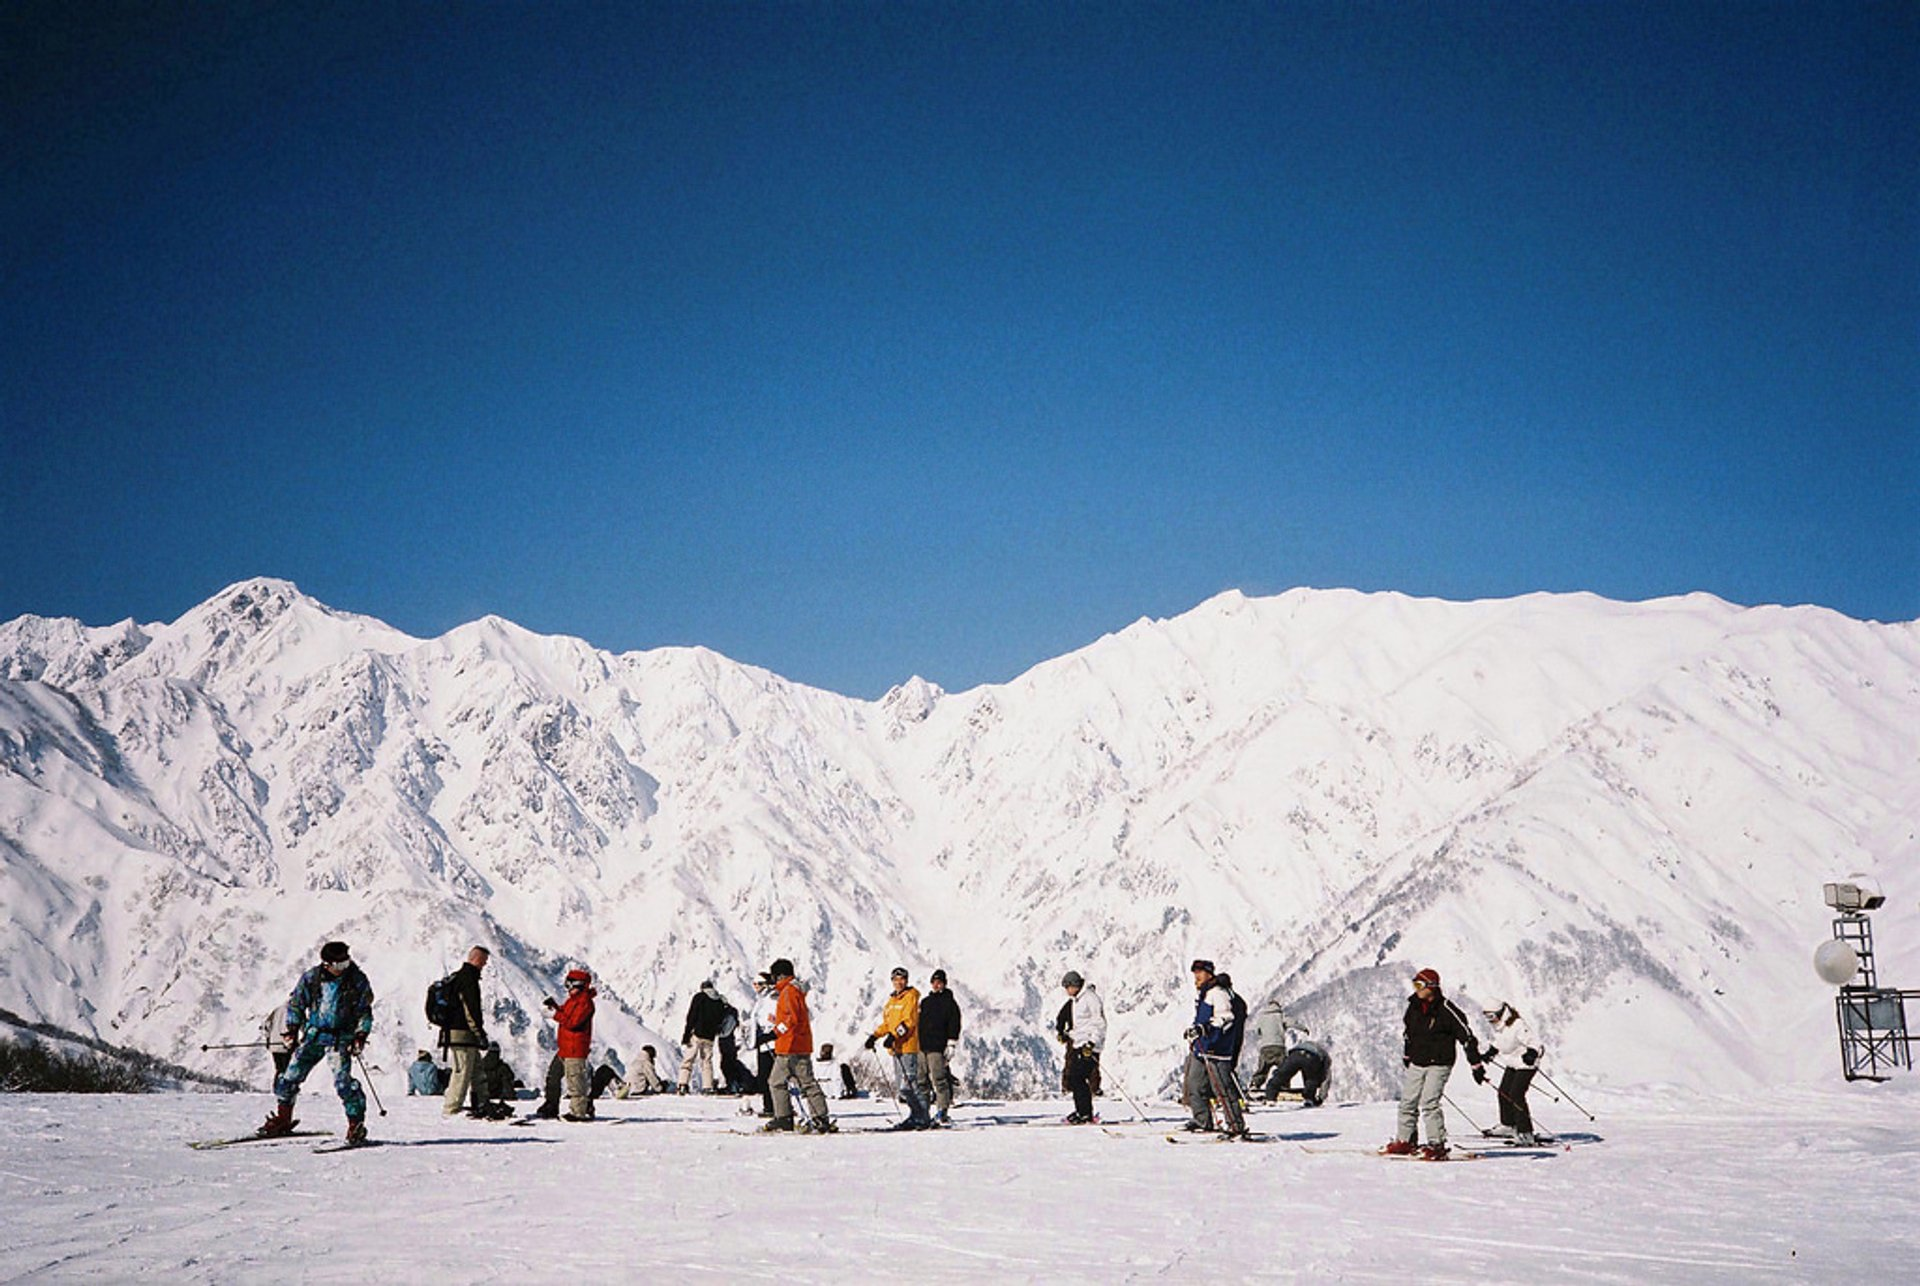 Snowboarding and Skiing in Japan - Best Season